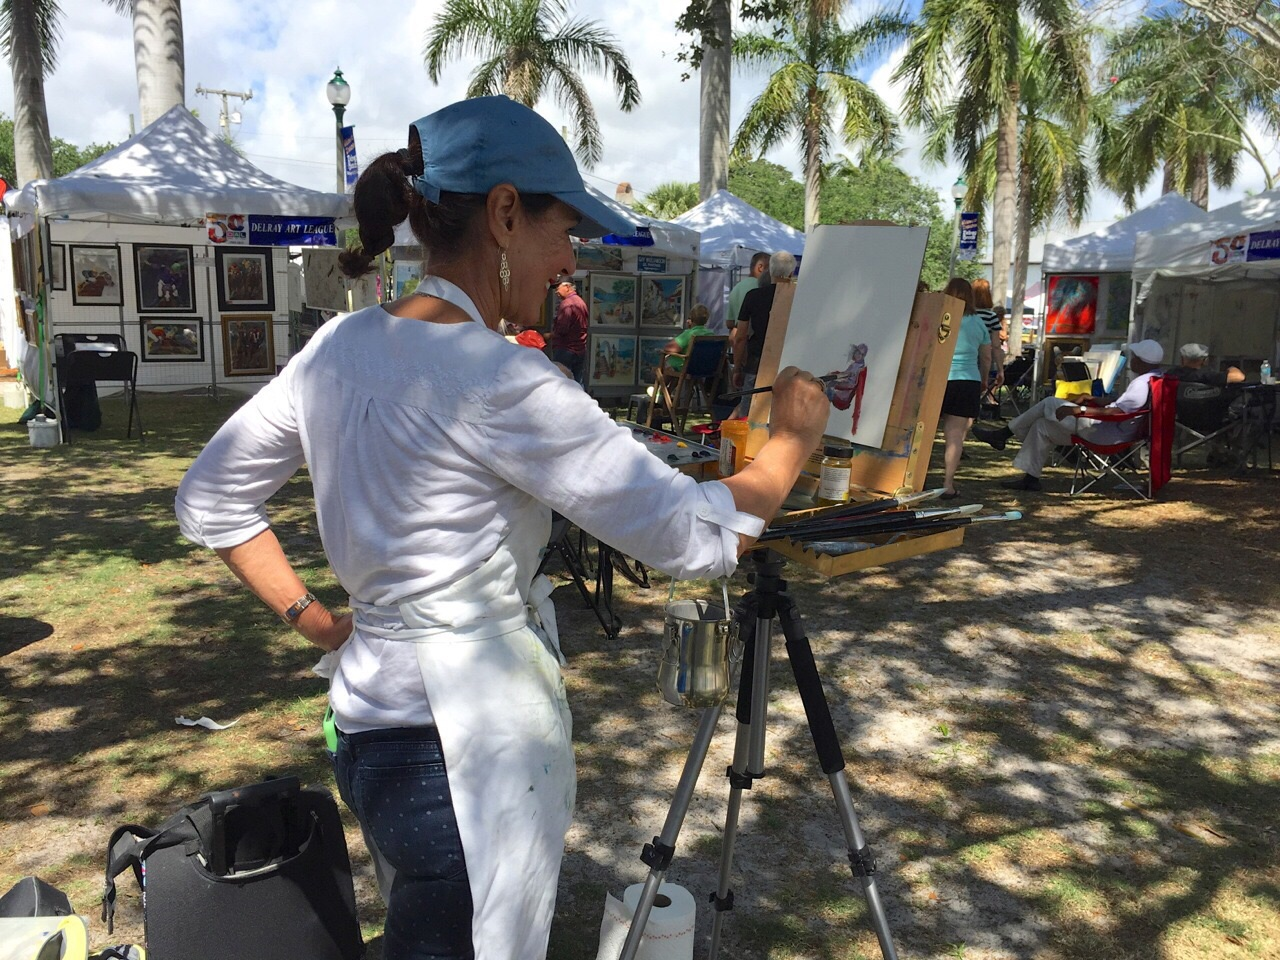 to capturing the action at art fairs......